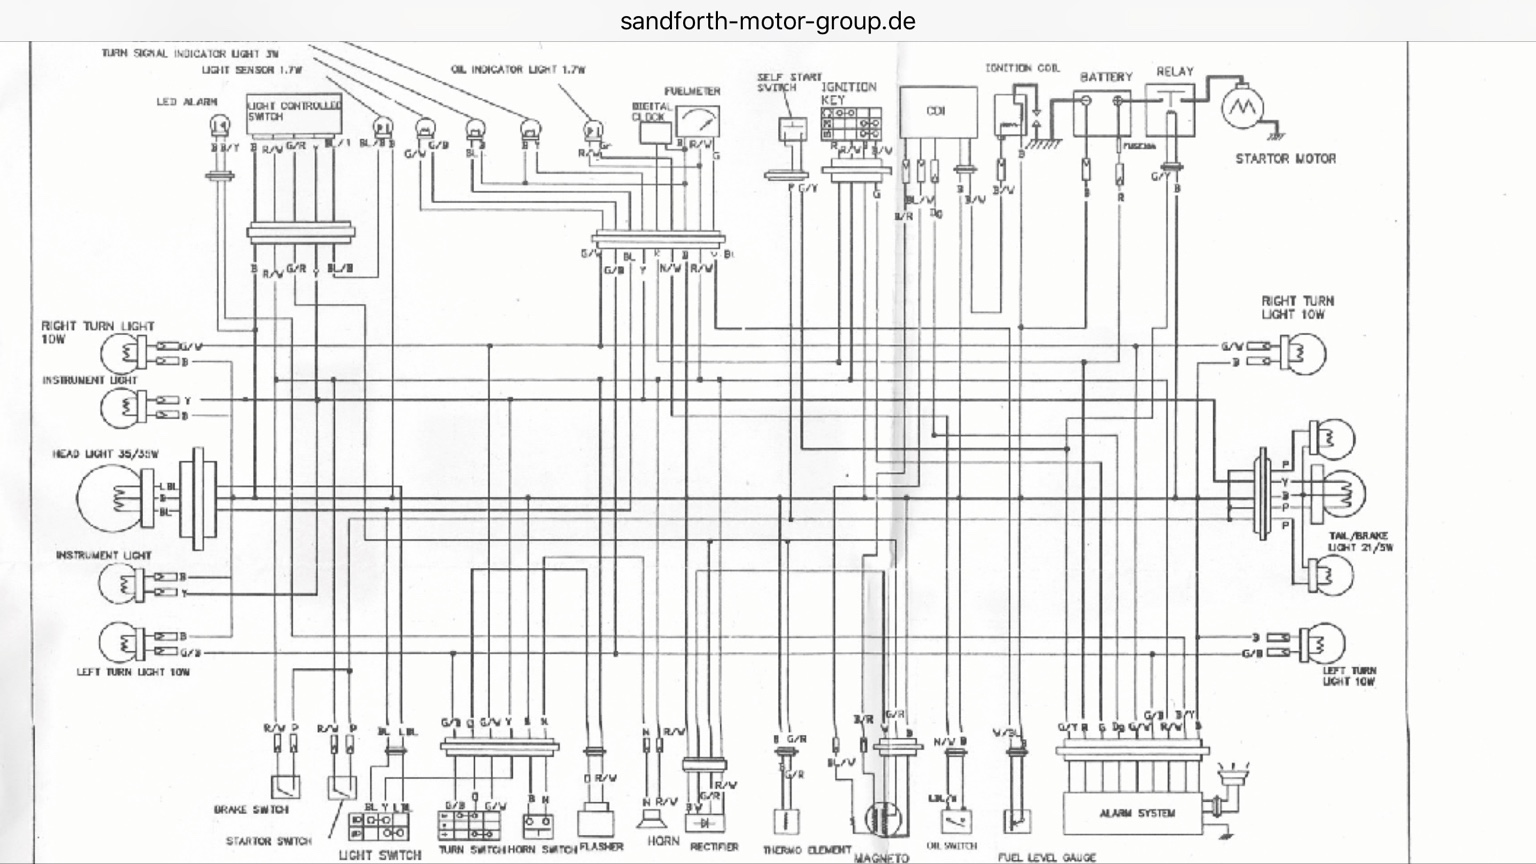 Cpi Manual Auto Electrical Wiring Diagram Carvin Vintage 16 Schematic People Also Interest With